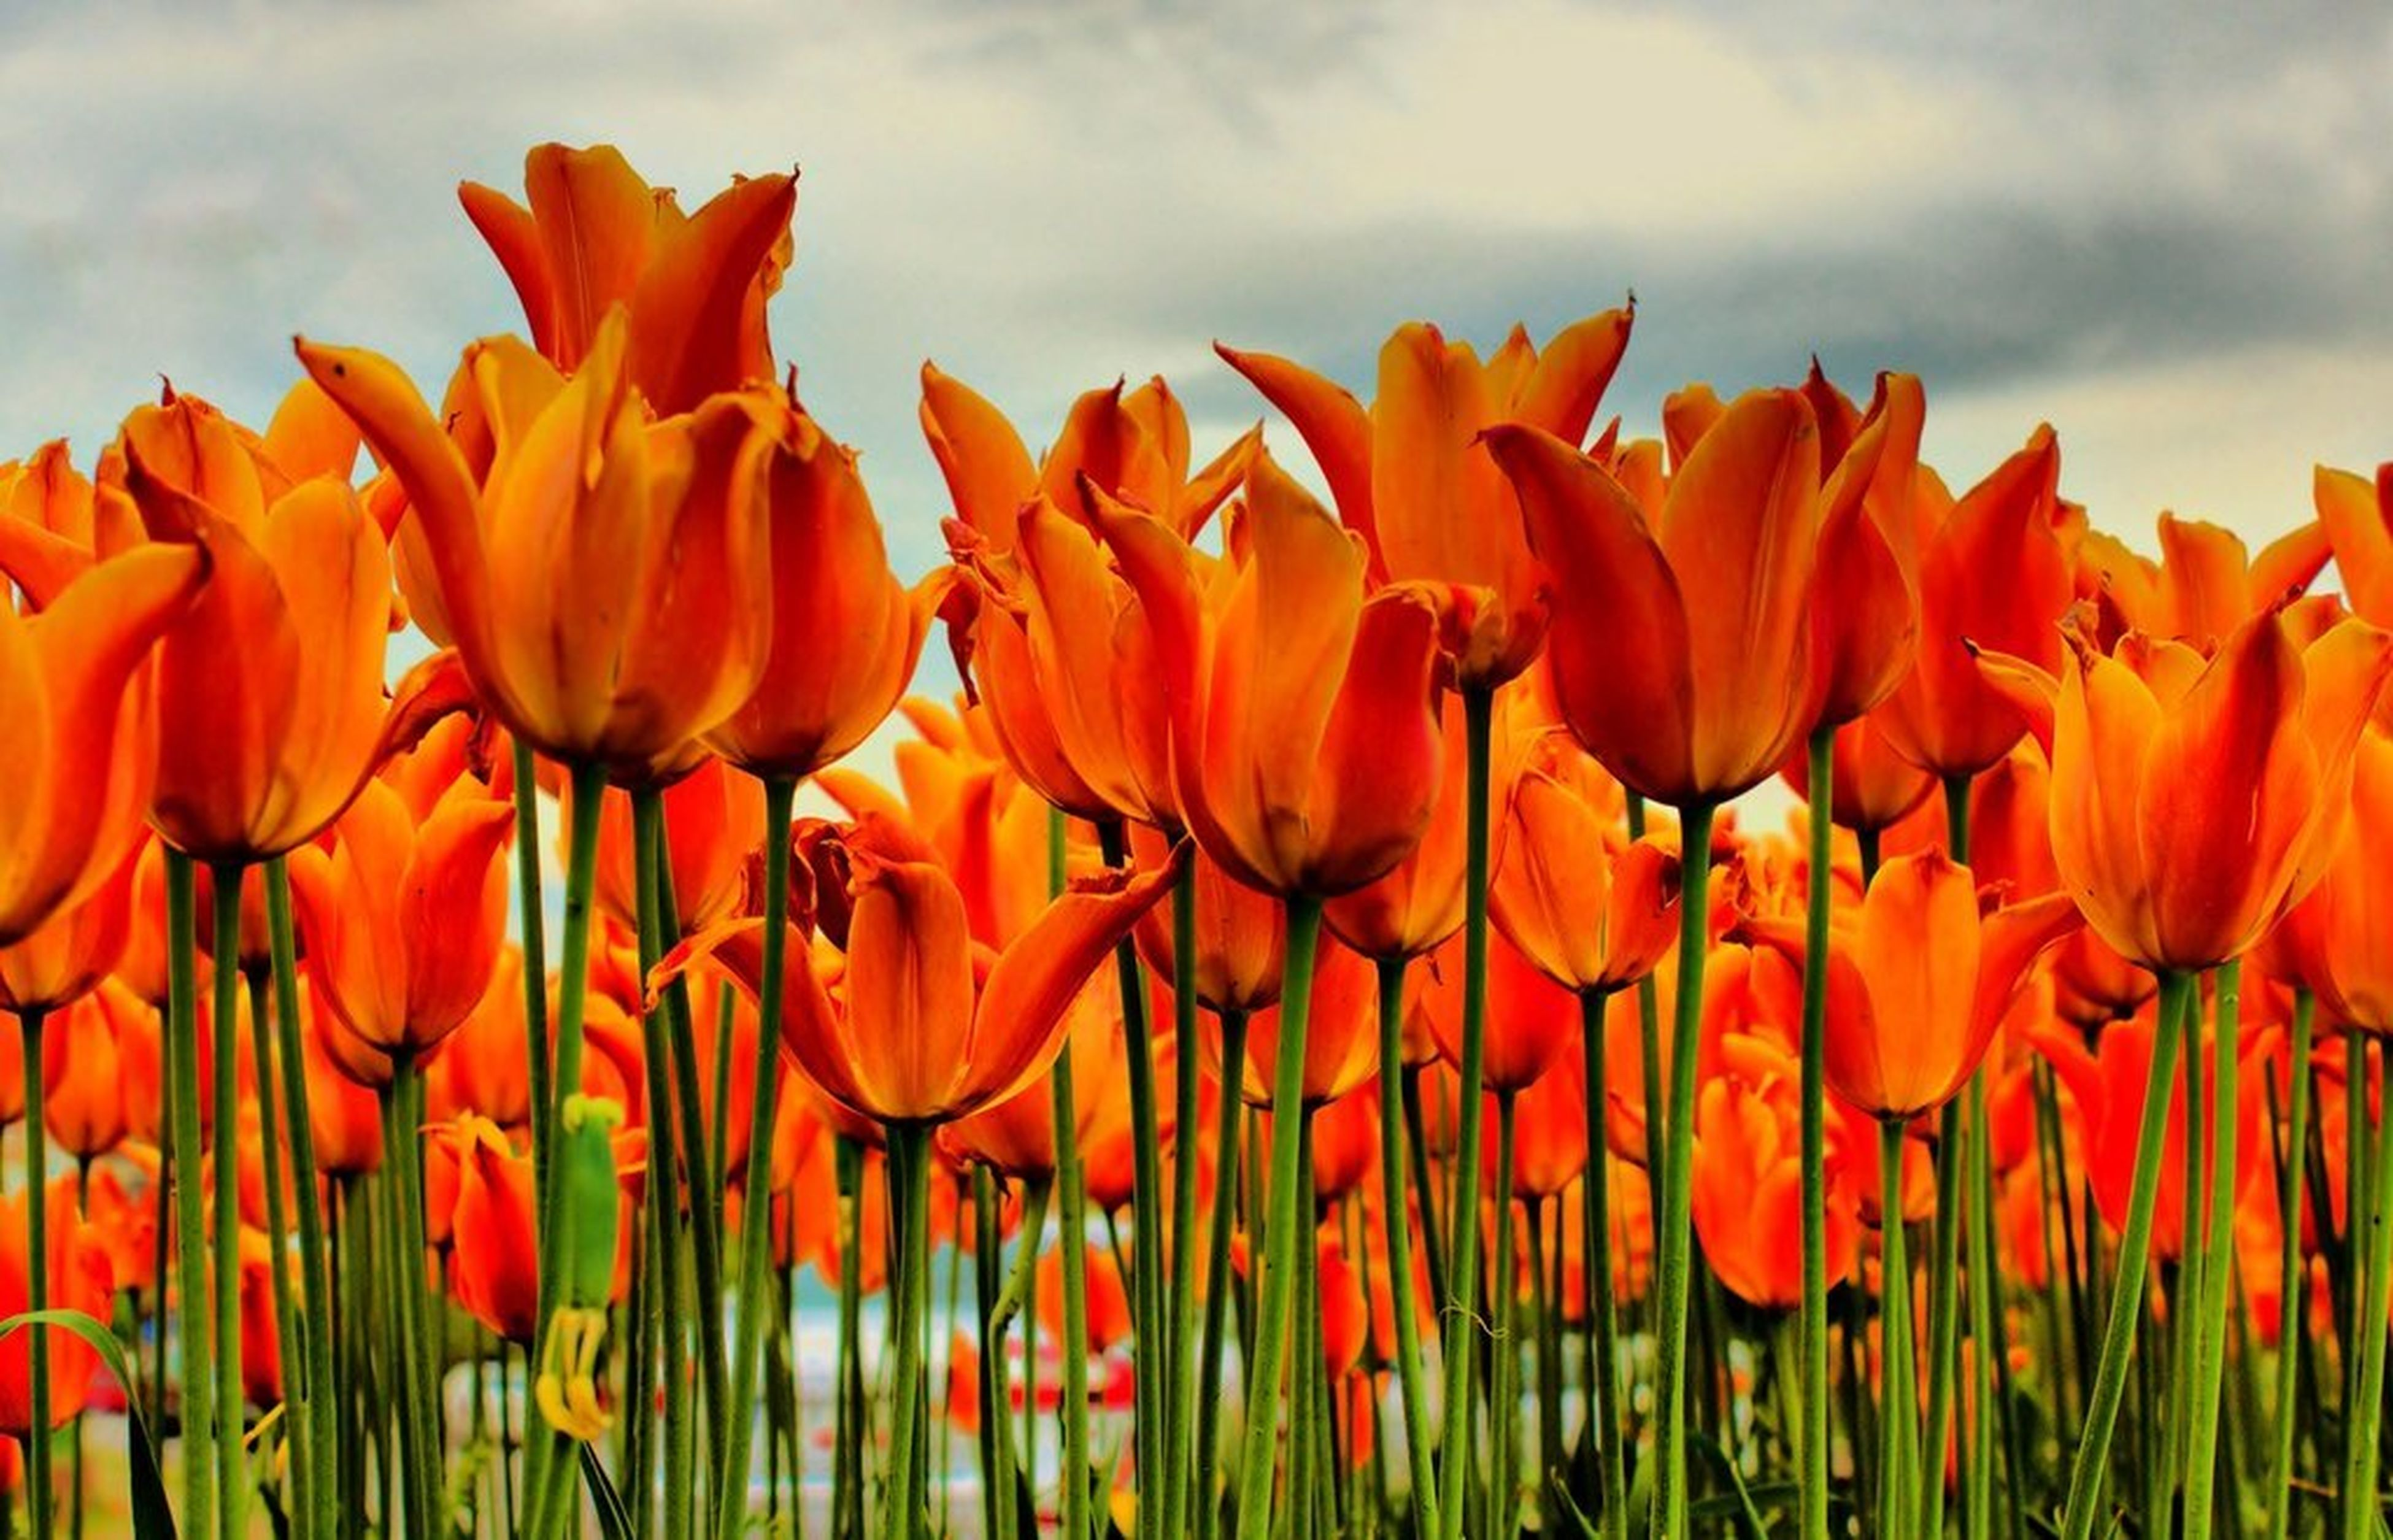 flower, growth, sky, field, beauty in nature, freshness, cloud - sky, tulip, nature, fragility, plant, petal, orange color, blooming, abundance, cloudy, flower head, red, rural scene, agriculture